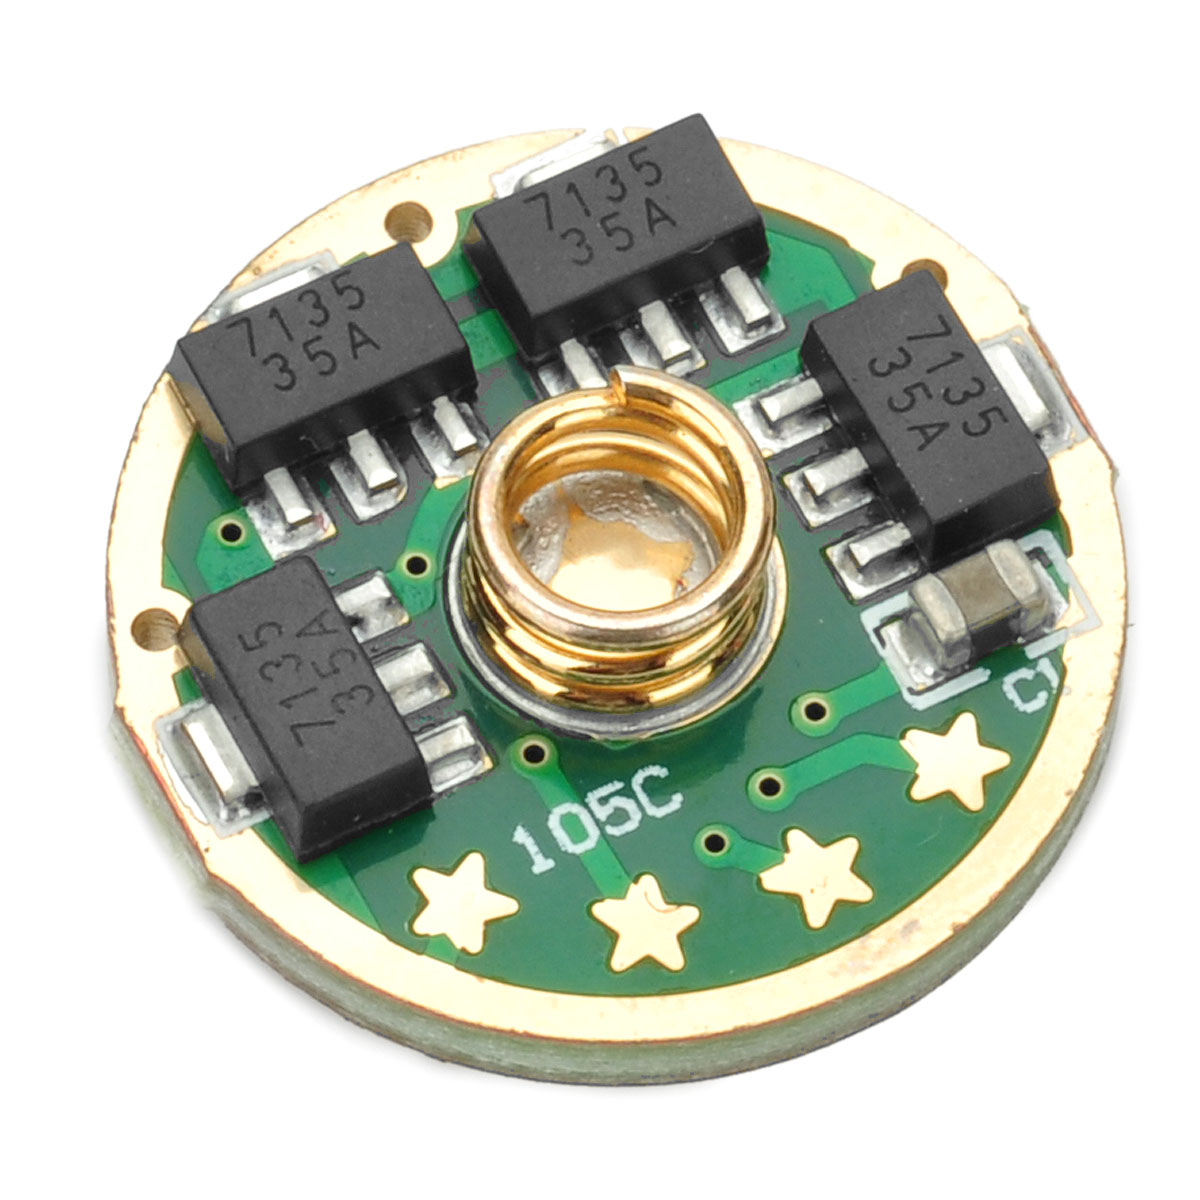 Practical 17mm Led Driver Circuit Board For Flashlight 5 Mode Electronic Toy Pcb